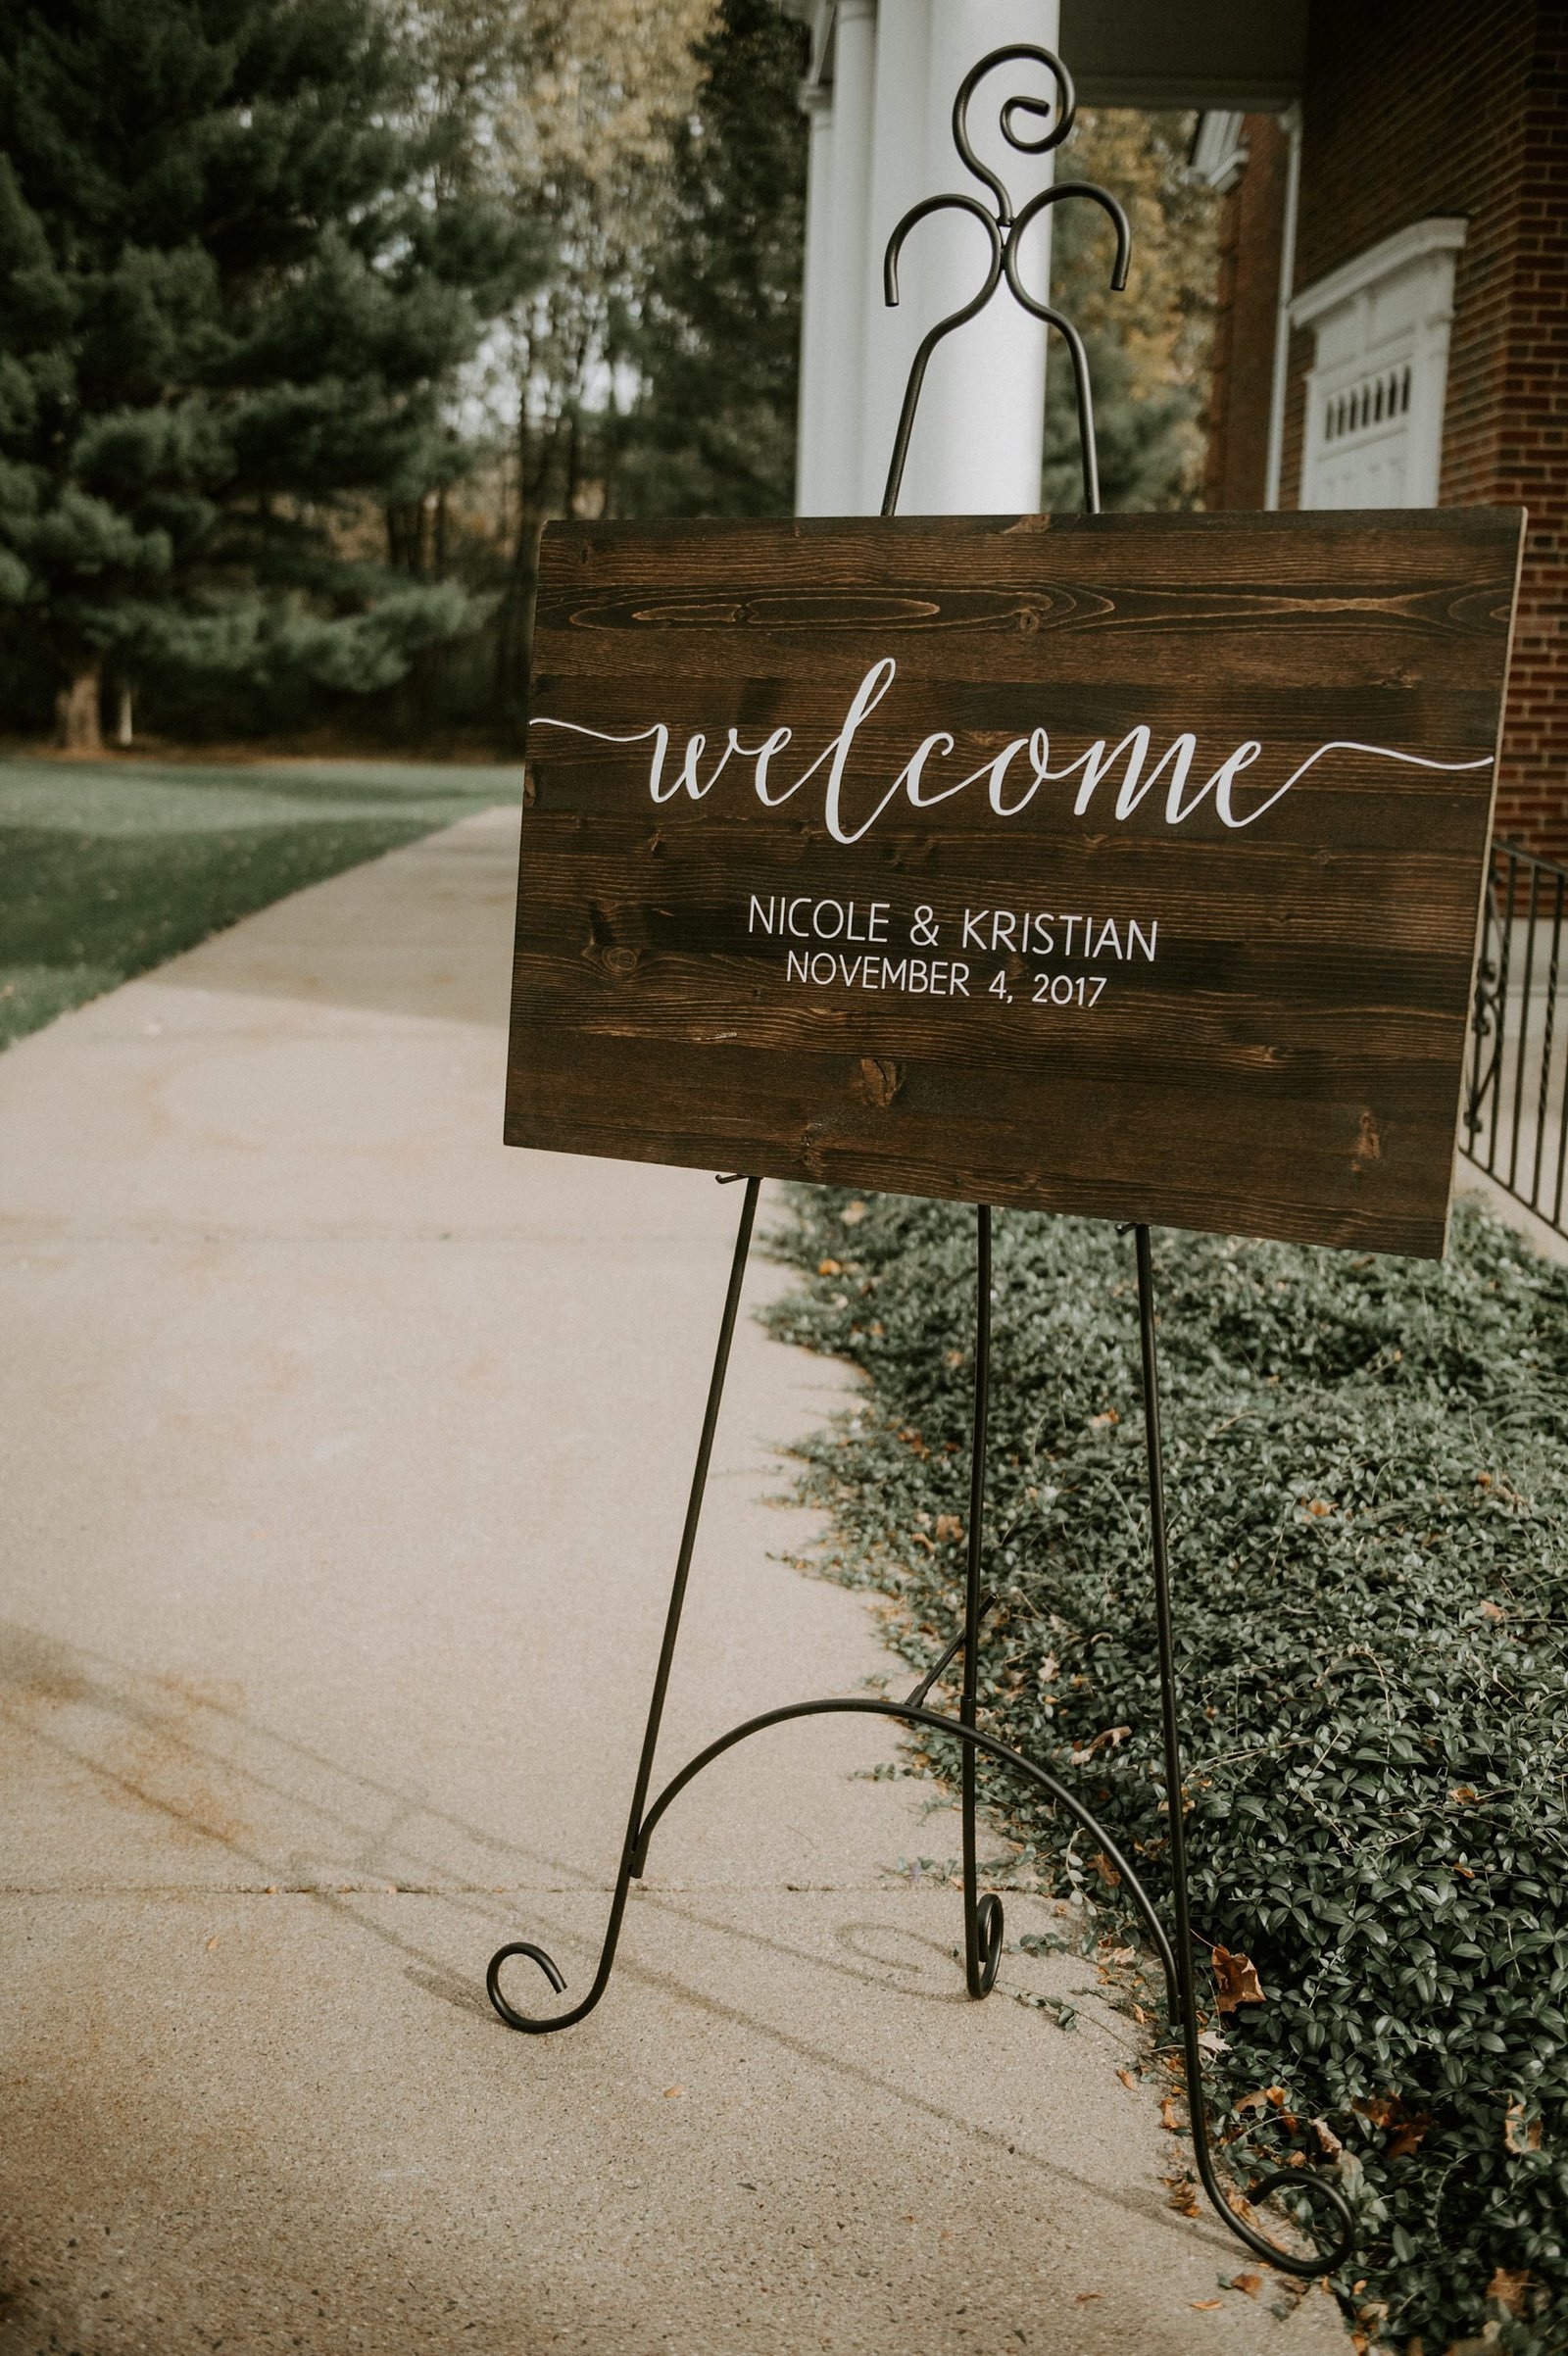 Rustic wooden ceremony welcome sign for wedding at The Webb Barn in Wethersfield, CT